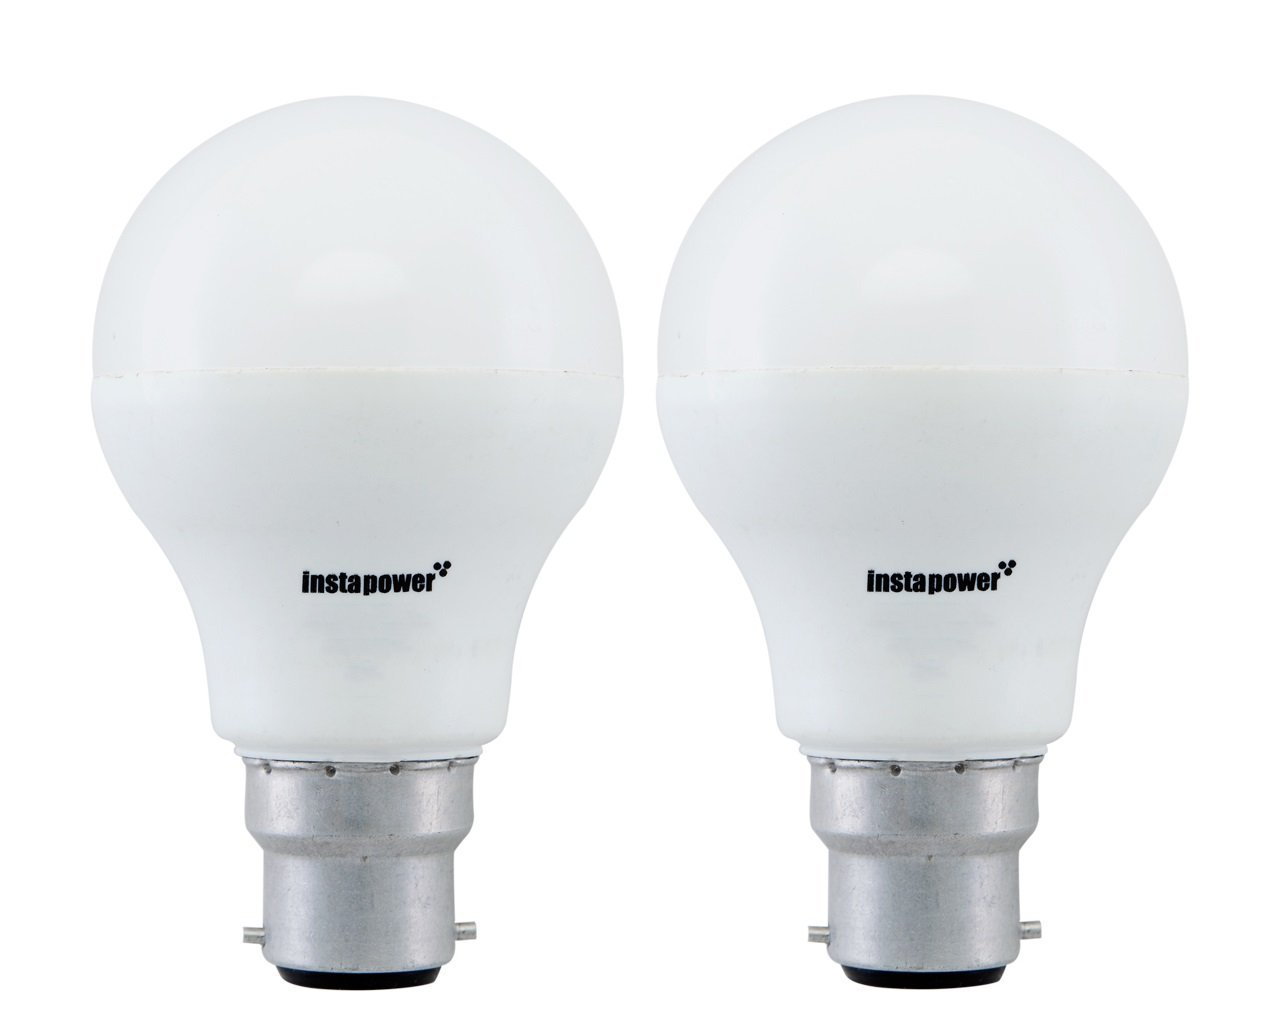 9 Watt Led Instapower Base B22 9 Watt Led Bulb Pack Of 2 Only For